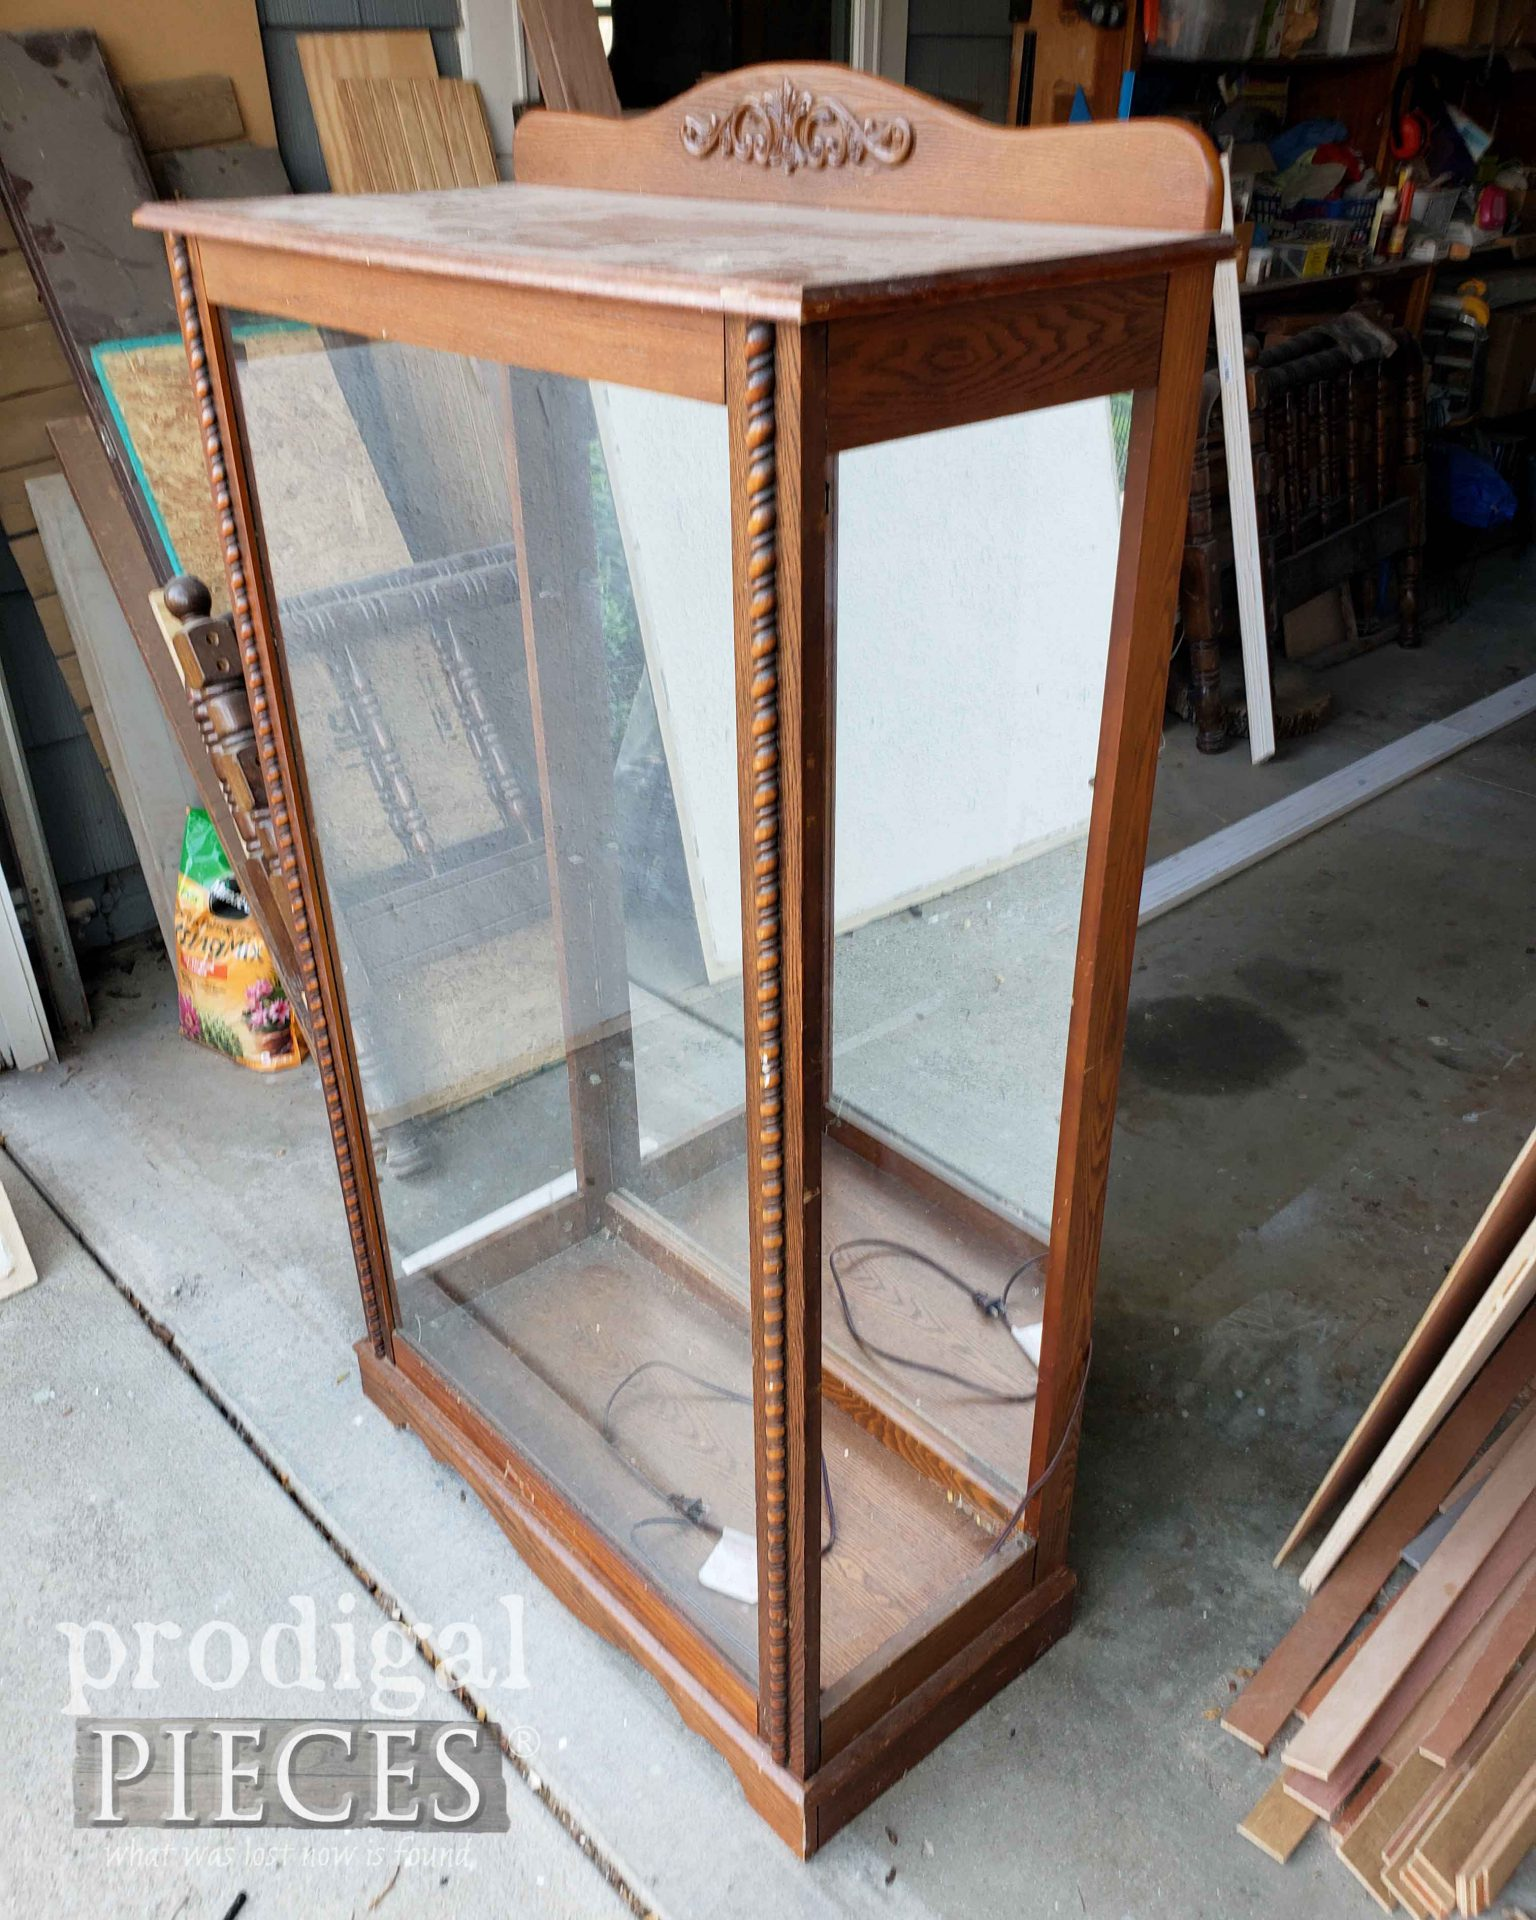 Curio Cabinet Side with Missing Doors | prodigalpieces.com #prodigalpieces